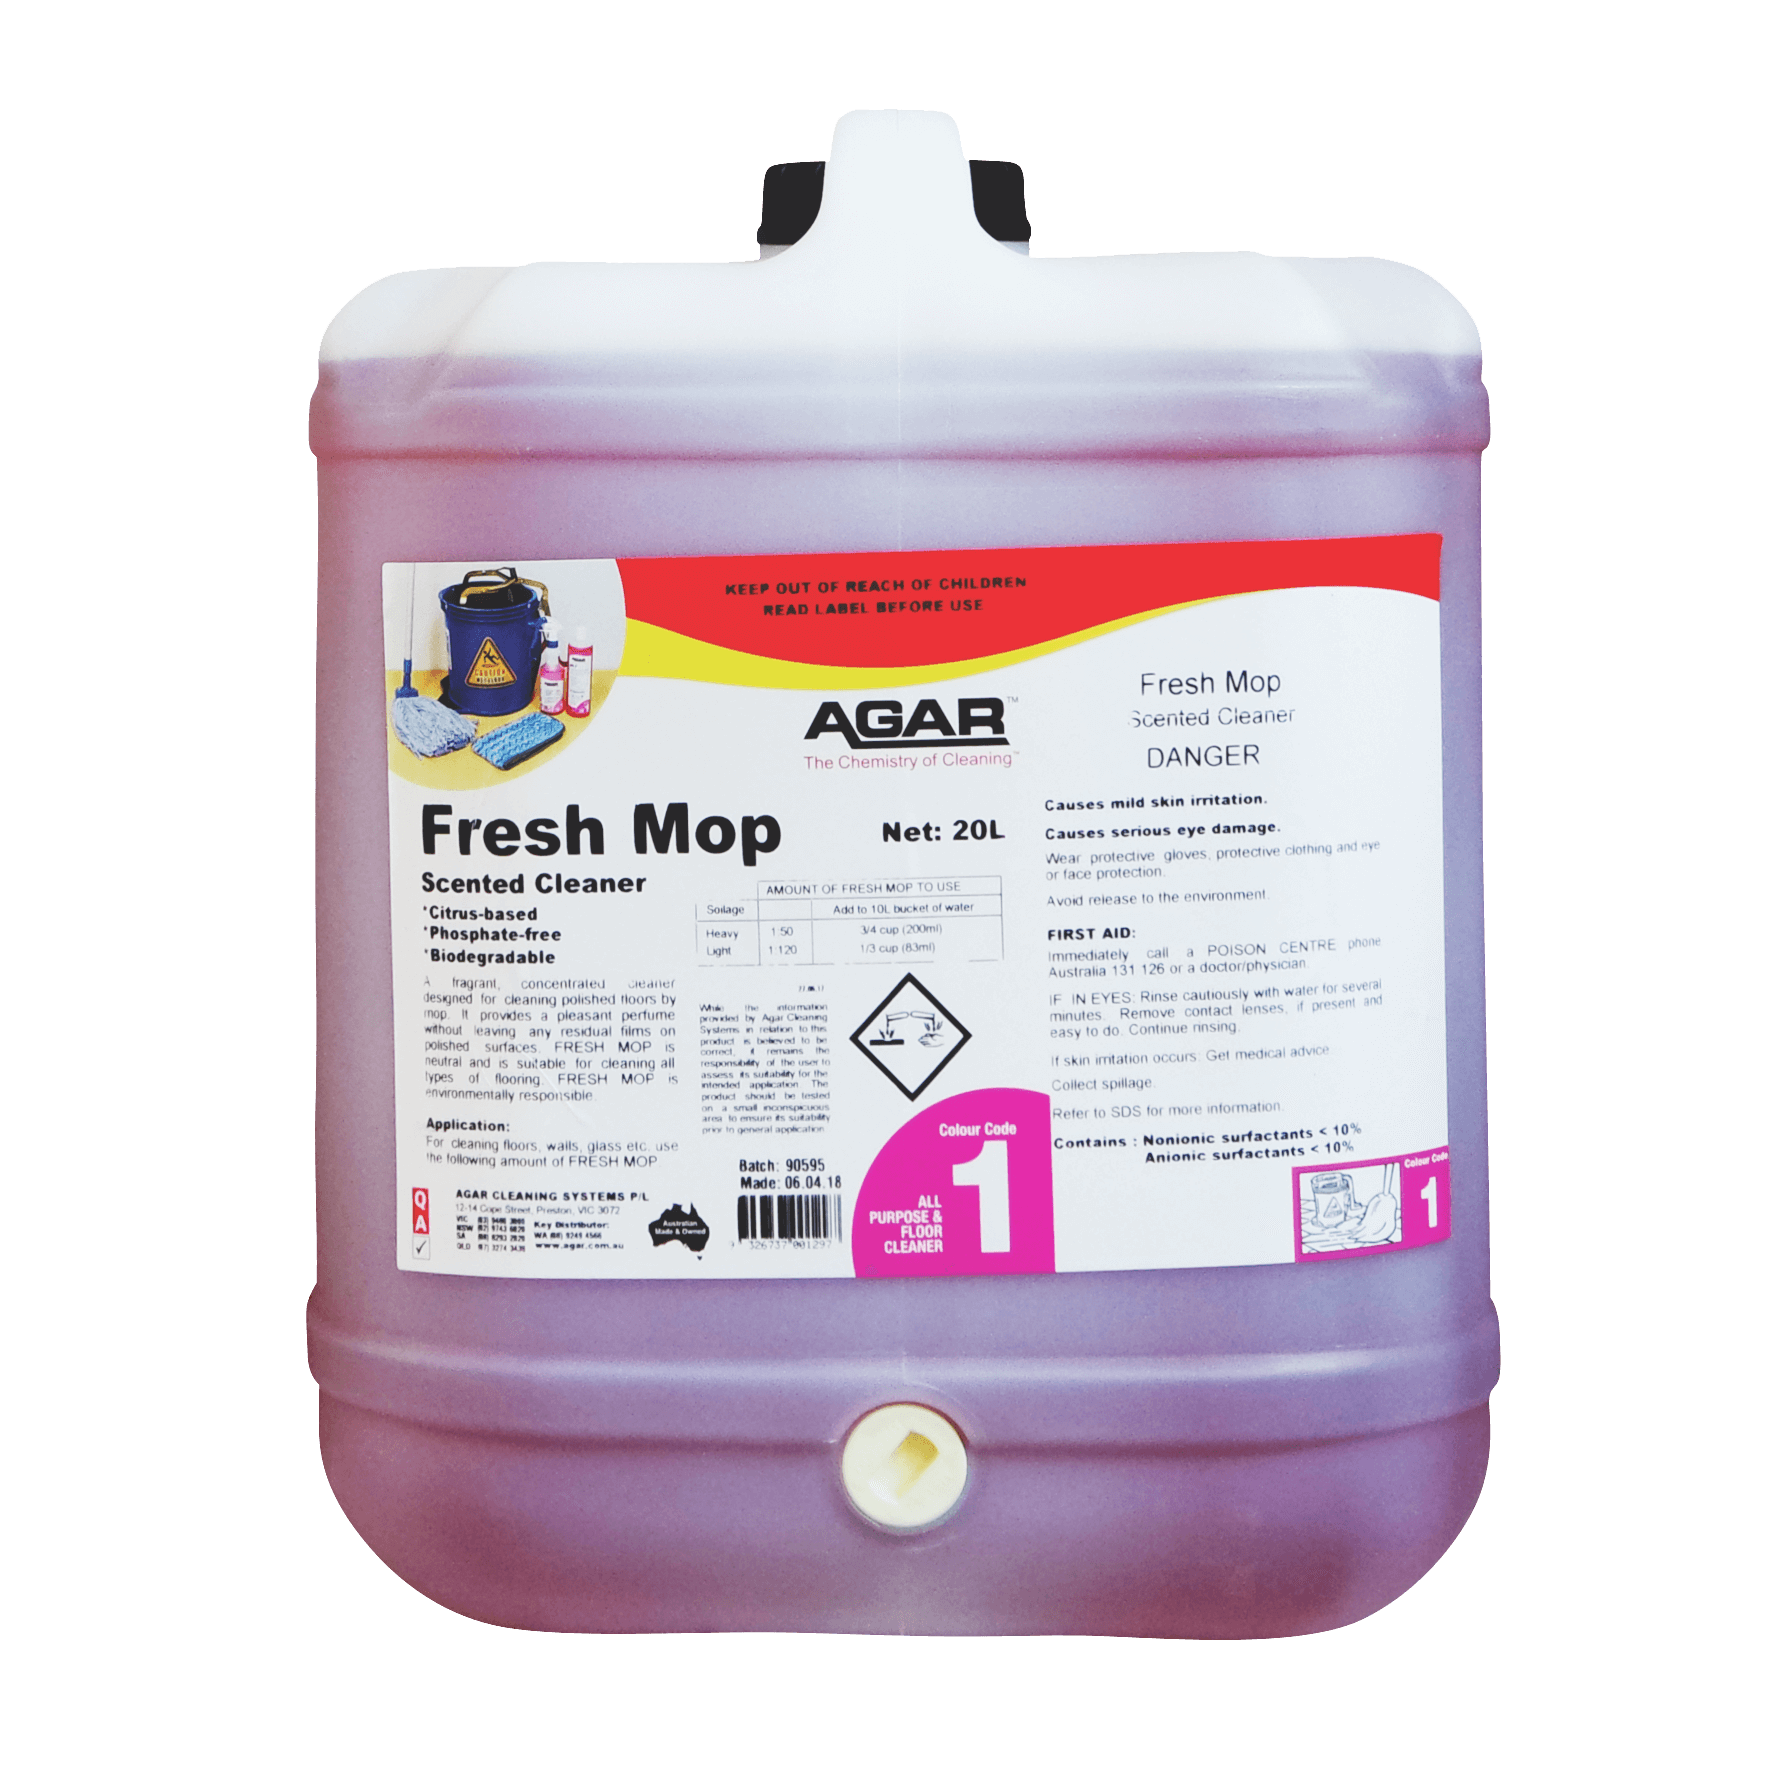 Agar Fresh Mop - Scented Cleaner 20L